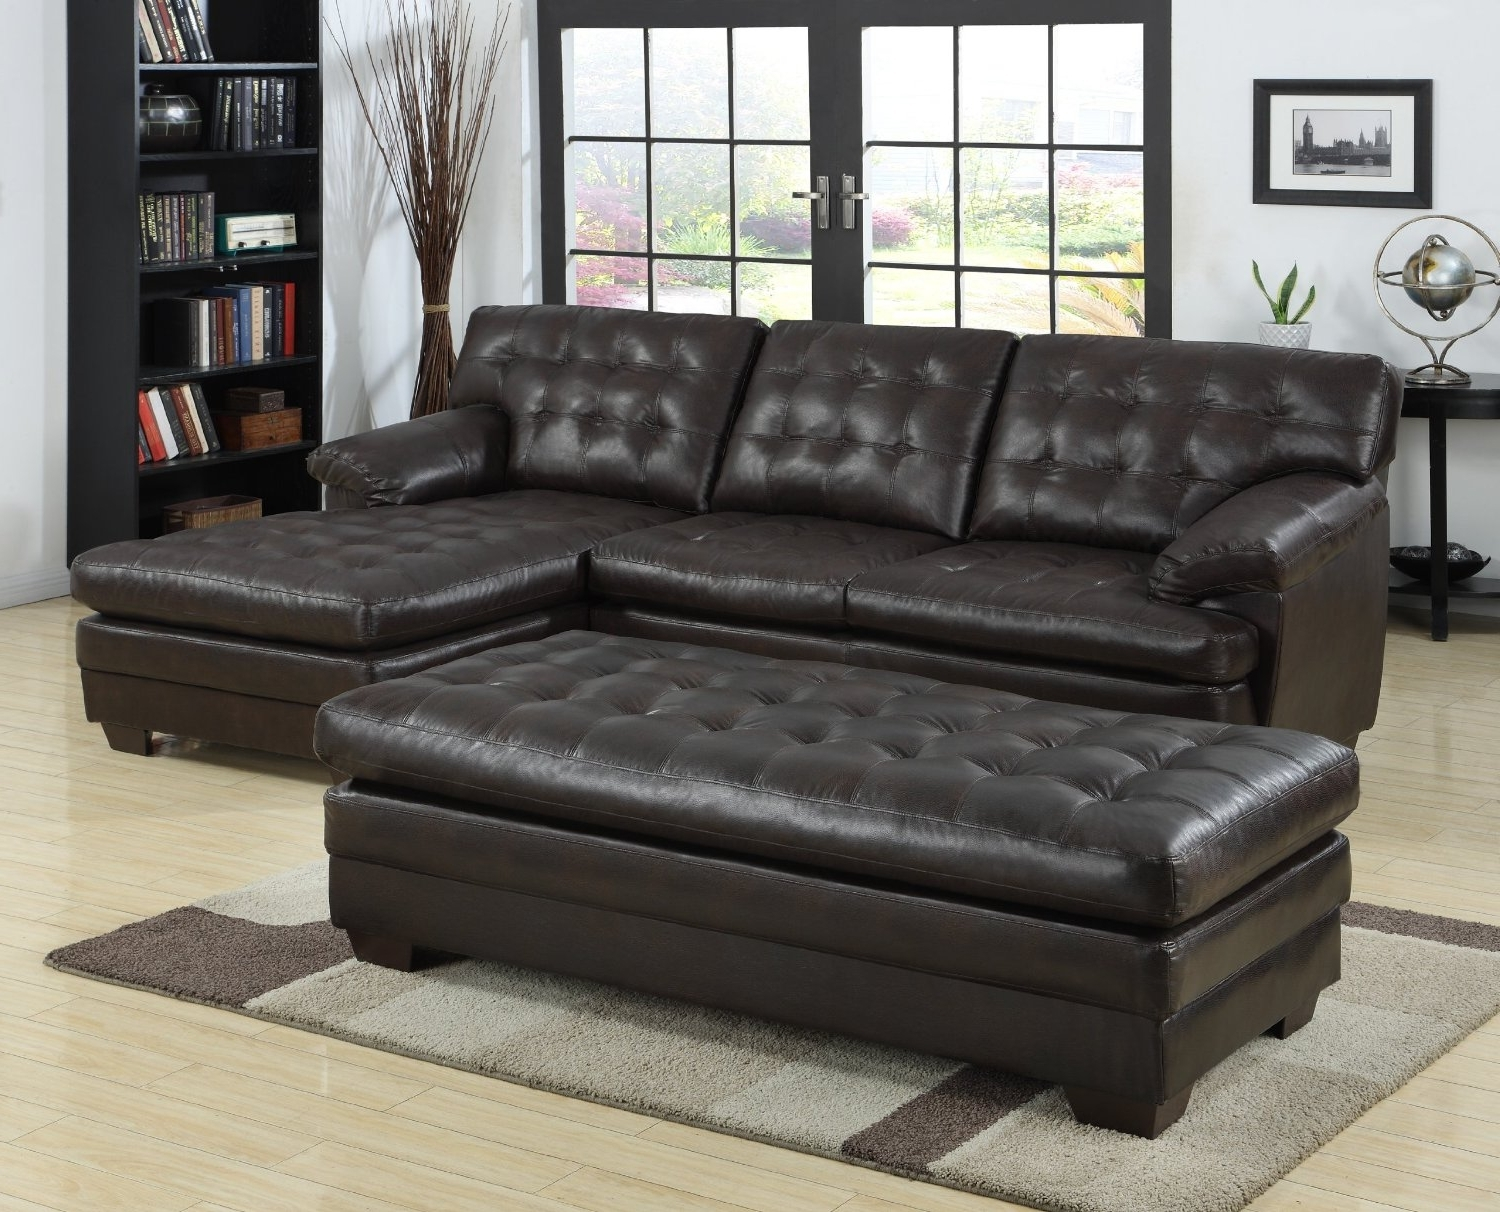 Black Tufted Leather Sectional Sofa With Chaise And Bench Seat Within Famous Sectional Sofas With Chaise Lounge And Ottoman (View 7 of 20)